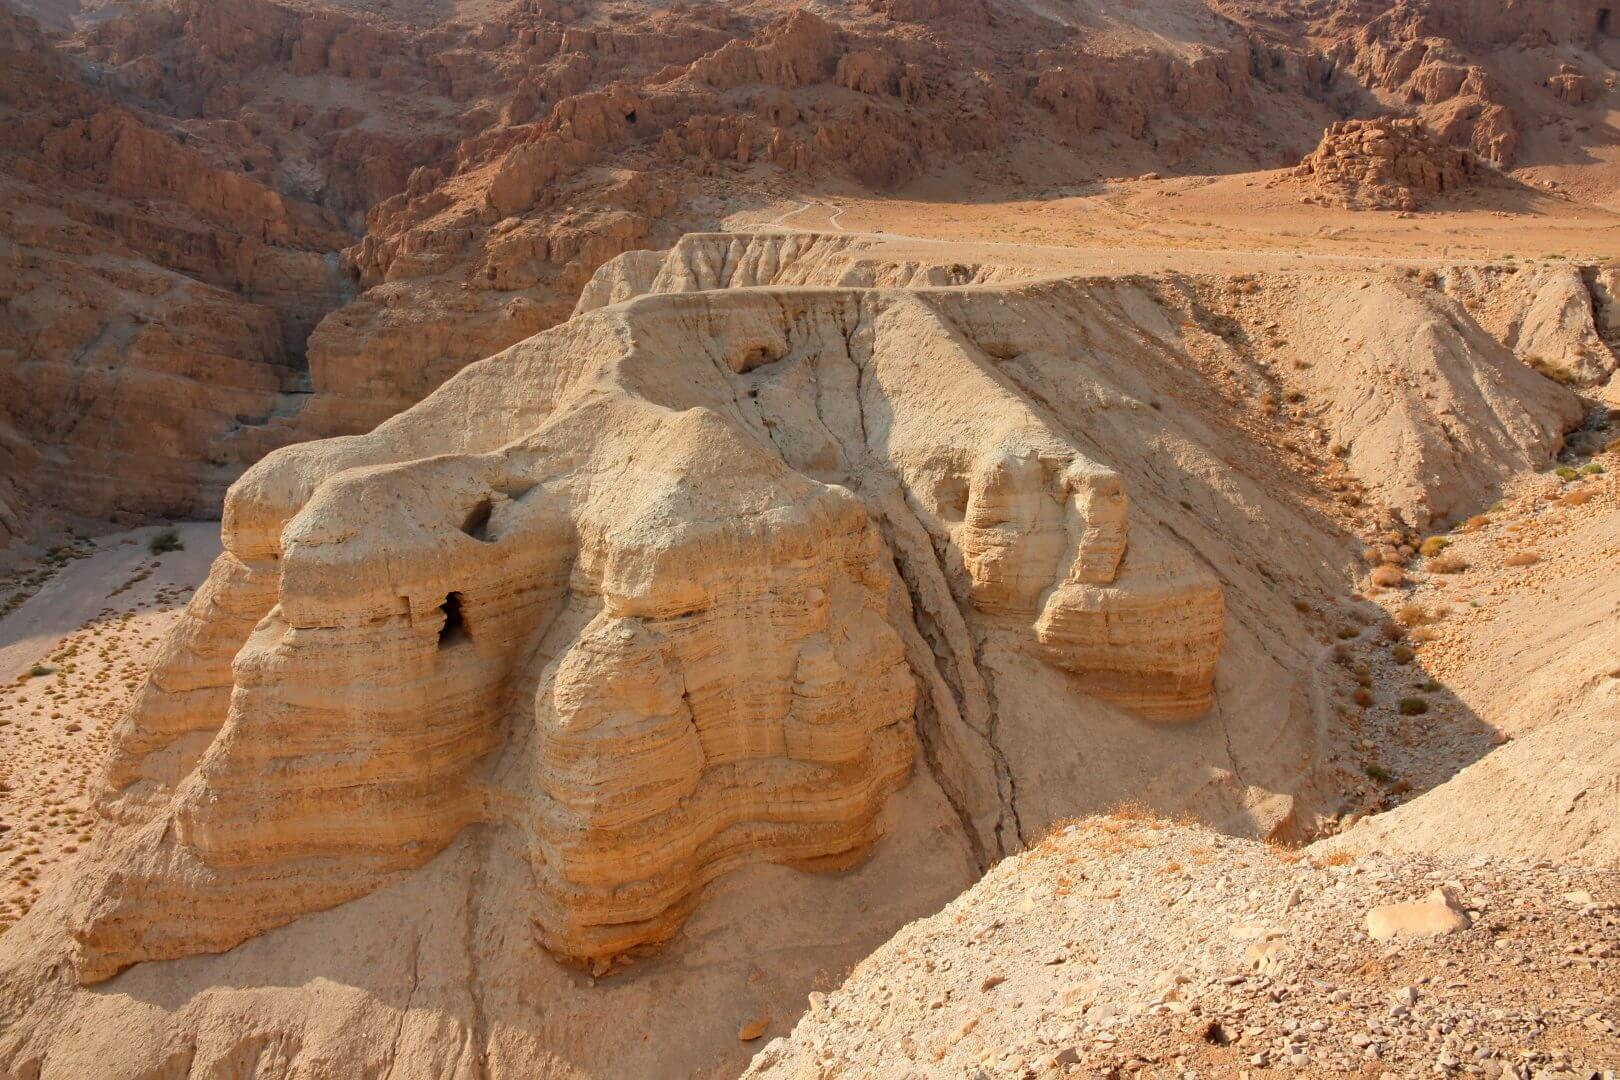 Qumran caves at the archaeological site in the Judean desert of the West Bank, Israel.